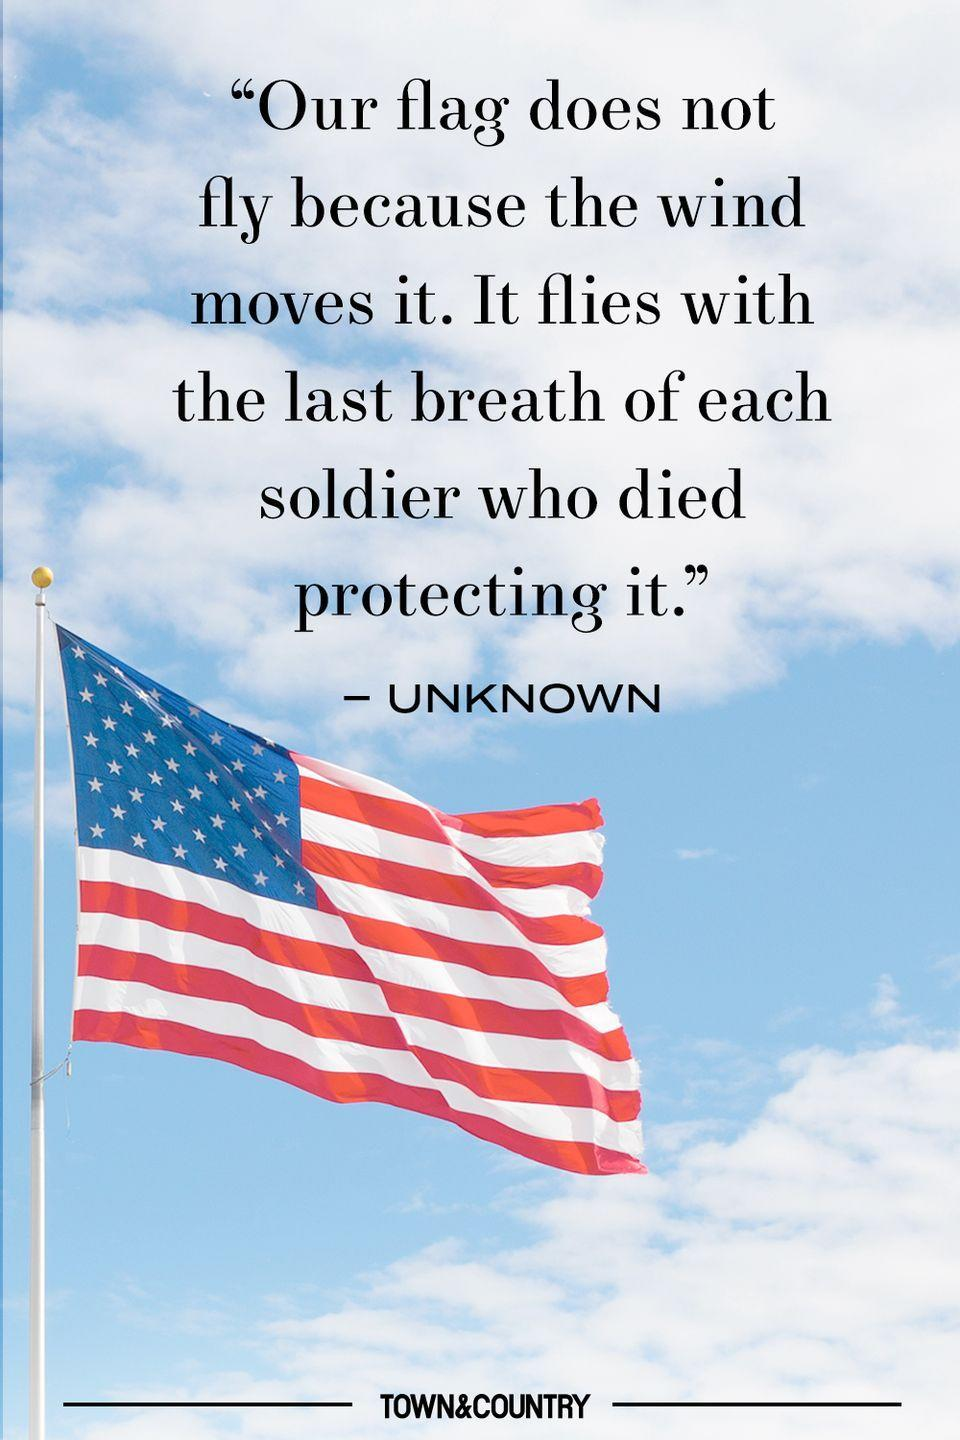 "<p>""Our flag does not fly because the wind moves it. it flies with the last breath of each soldier who died protecting it."" </p><p>– Unknown </p>"